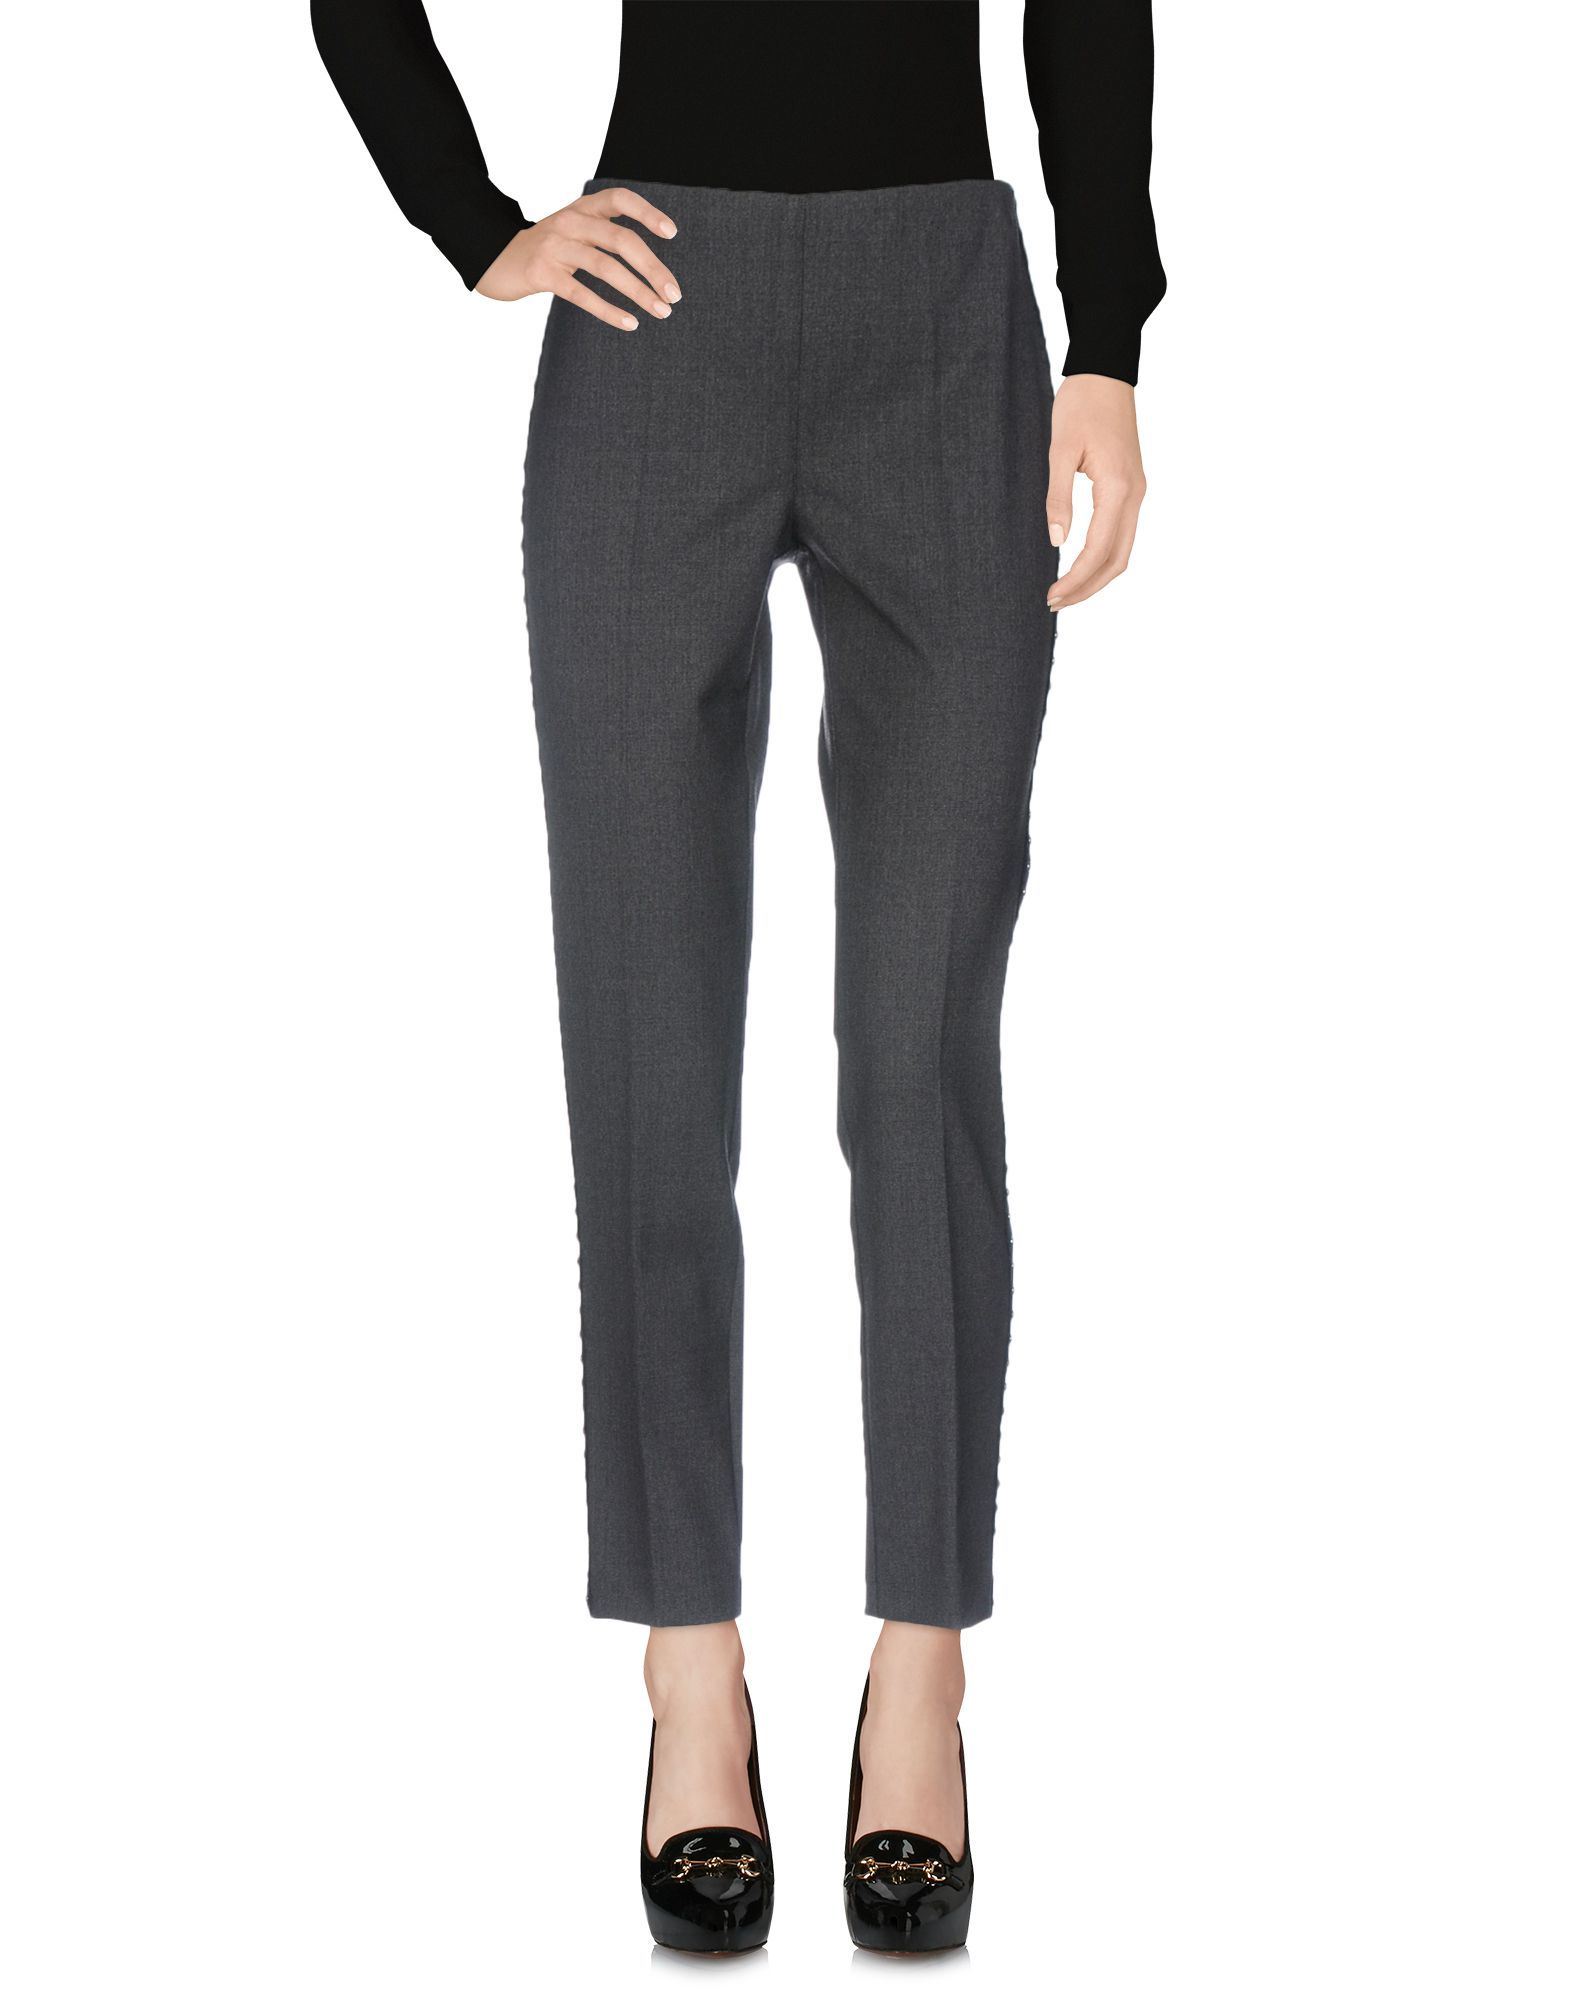 P.A.R.O.S.H. Grey Virgin Wool Tapered Leg Trousers